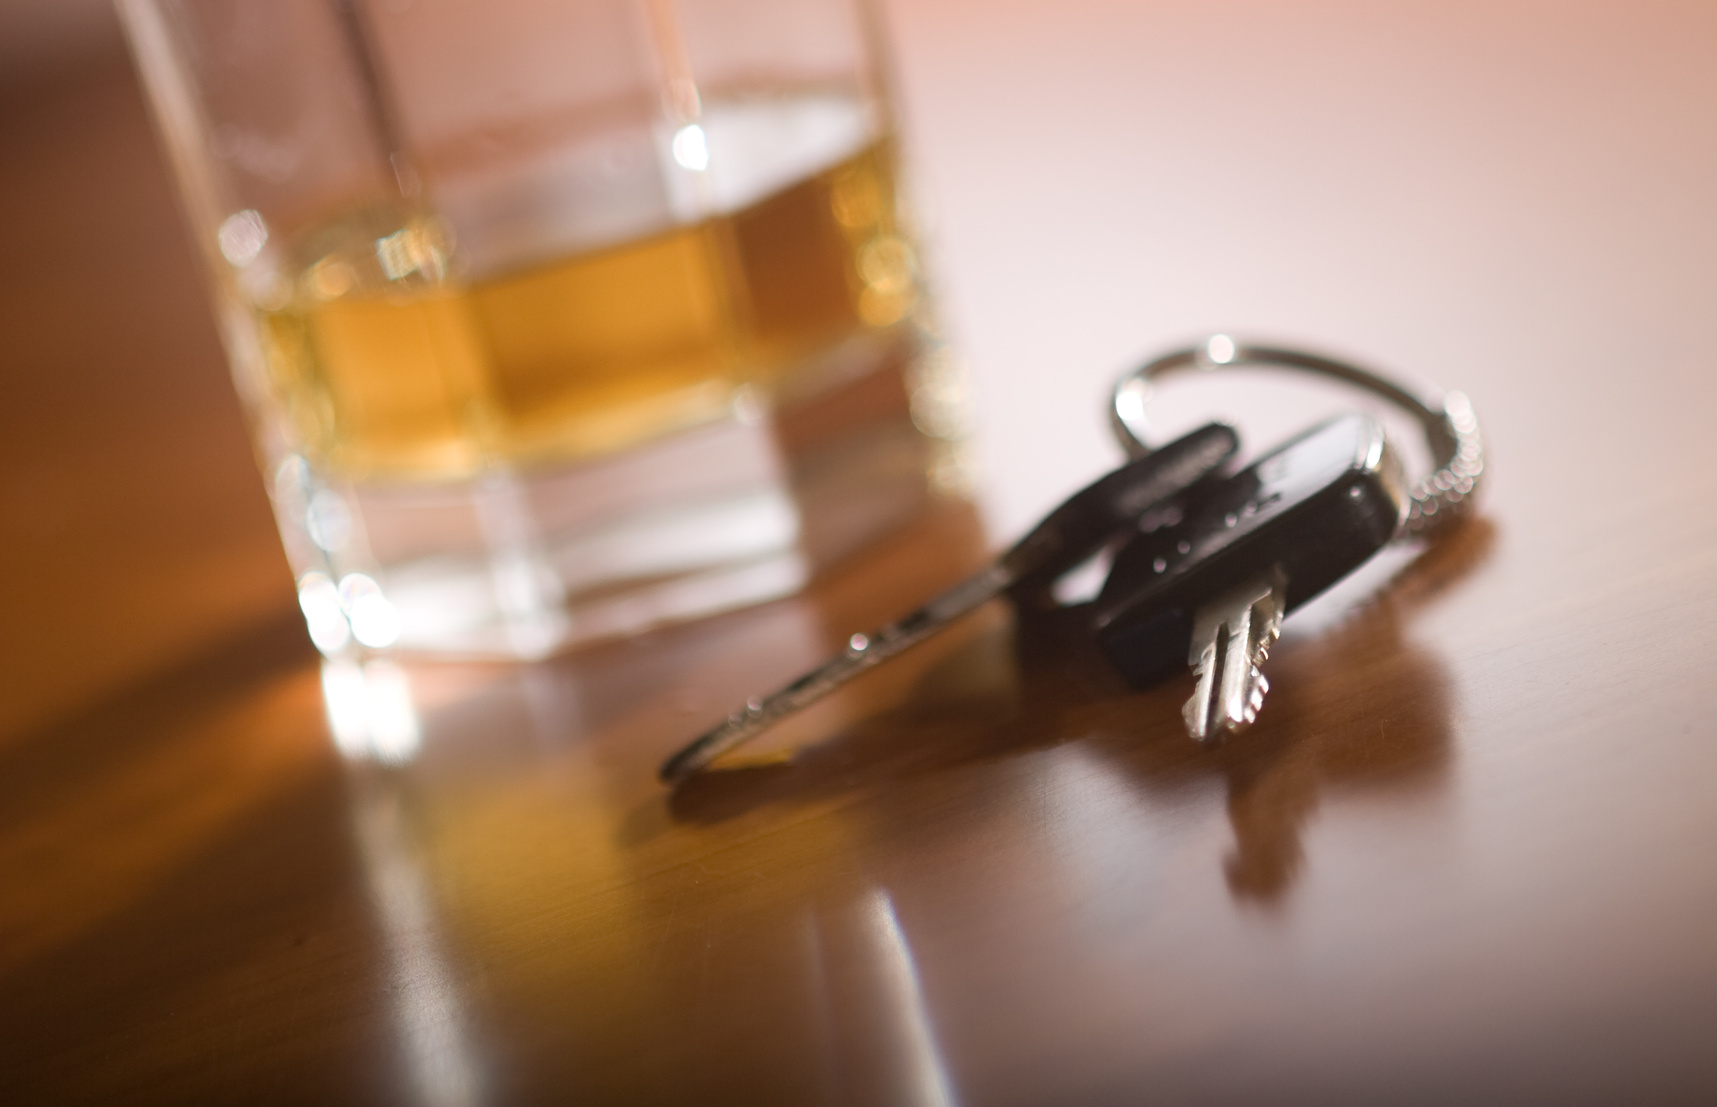 What to Expect With a First Offense DUI in Texas